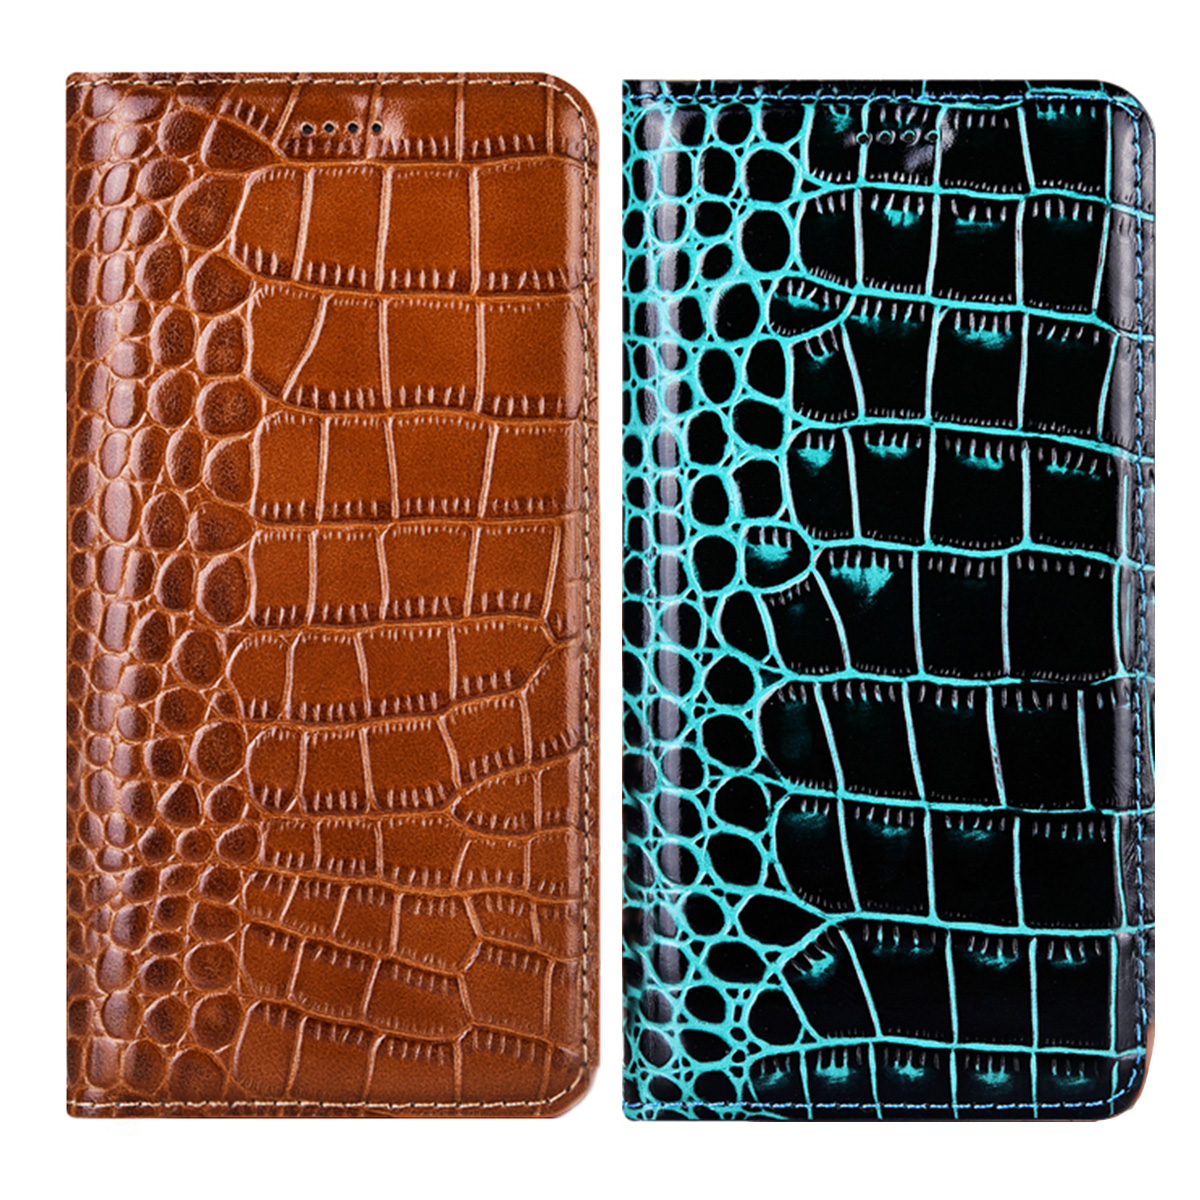 Crocodile <font><b>Genuine</b></font> <font><b>Leather</b></font> Flip Phone <font><b>Case</b></font> For <font><b>iPhone</b></font> 11 Pro Max X XR XS MAX Cover For <font><b>iPhone</b></font> 5 <font><b>5S</b></font> SE 2020 6 6S 7 8 Plus Coque image